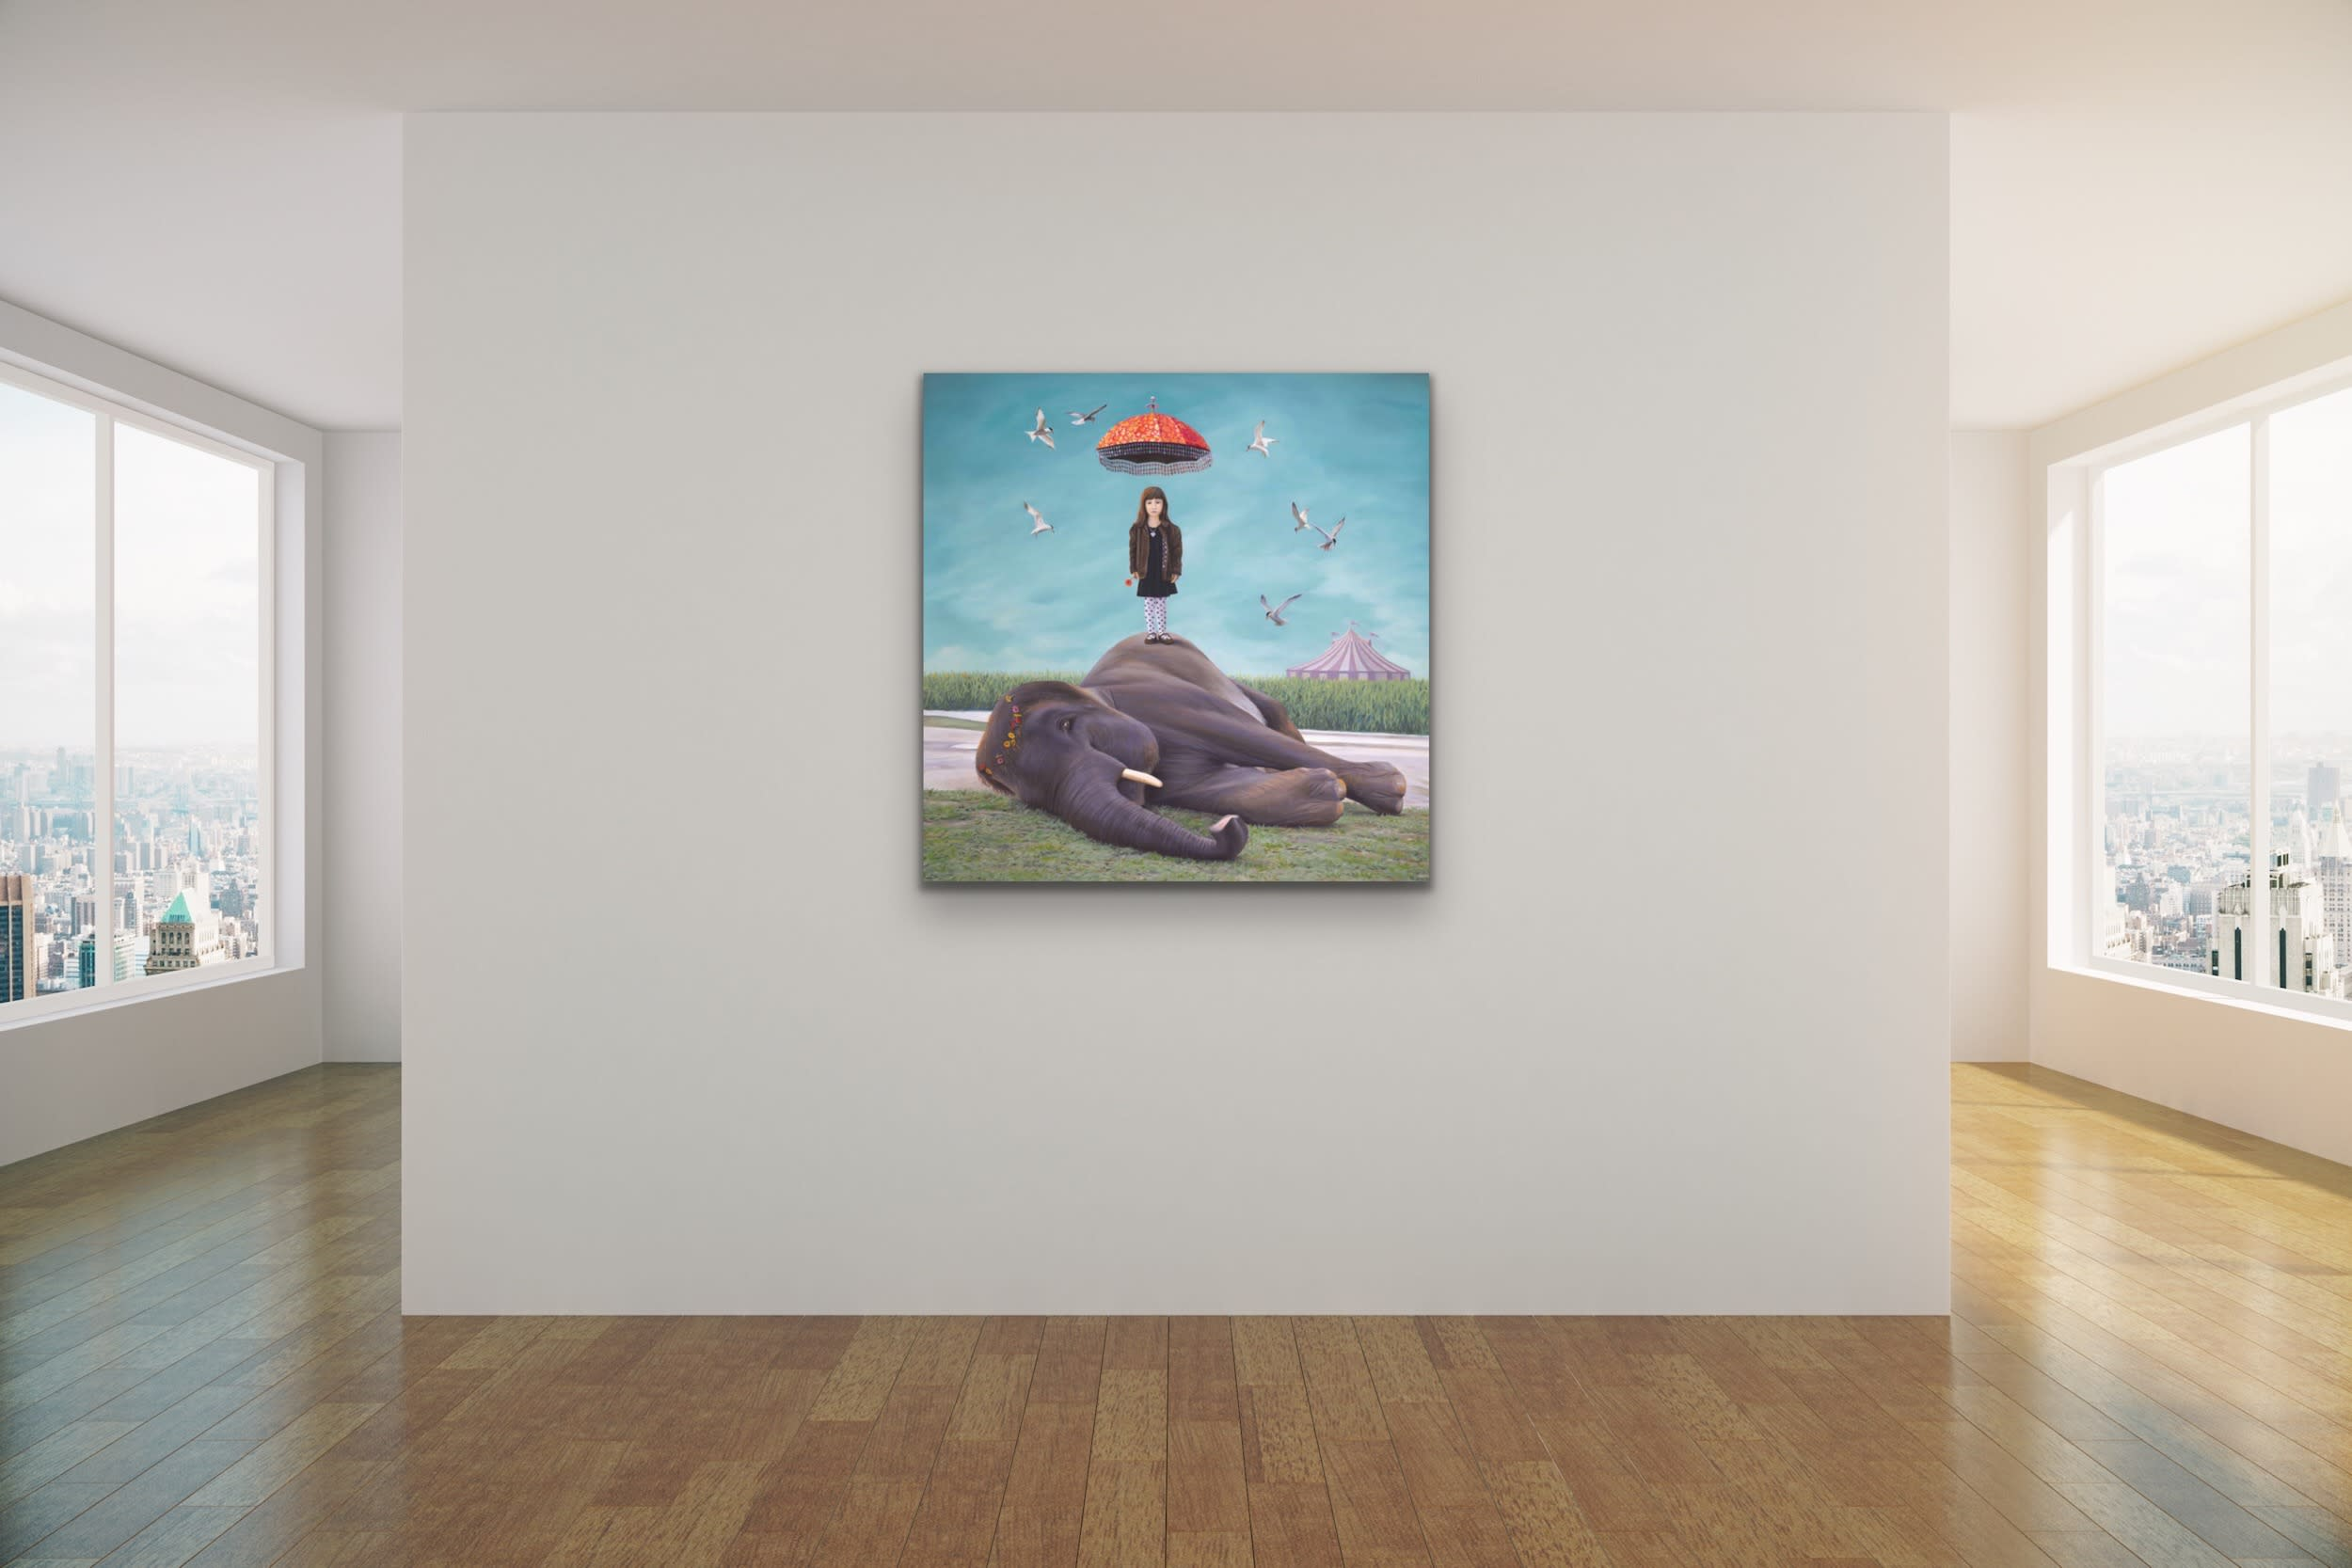 <div class='title'>           Paul Bond Magical Realism Poetry Serene Landscape Animals Nature Surreal Metaphorical Whimsical Fantasy Evo Art Maui Lahaina Front Street Art Gallery 15         </div>